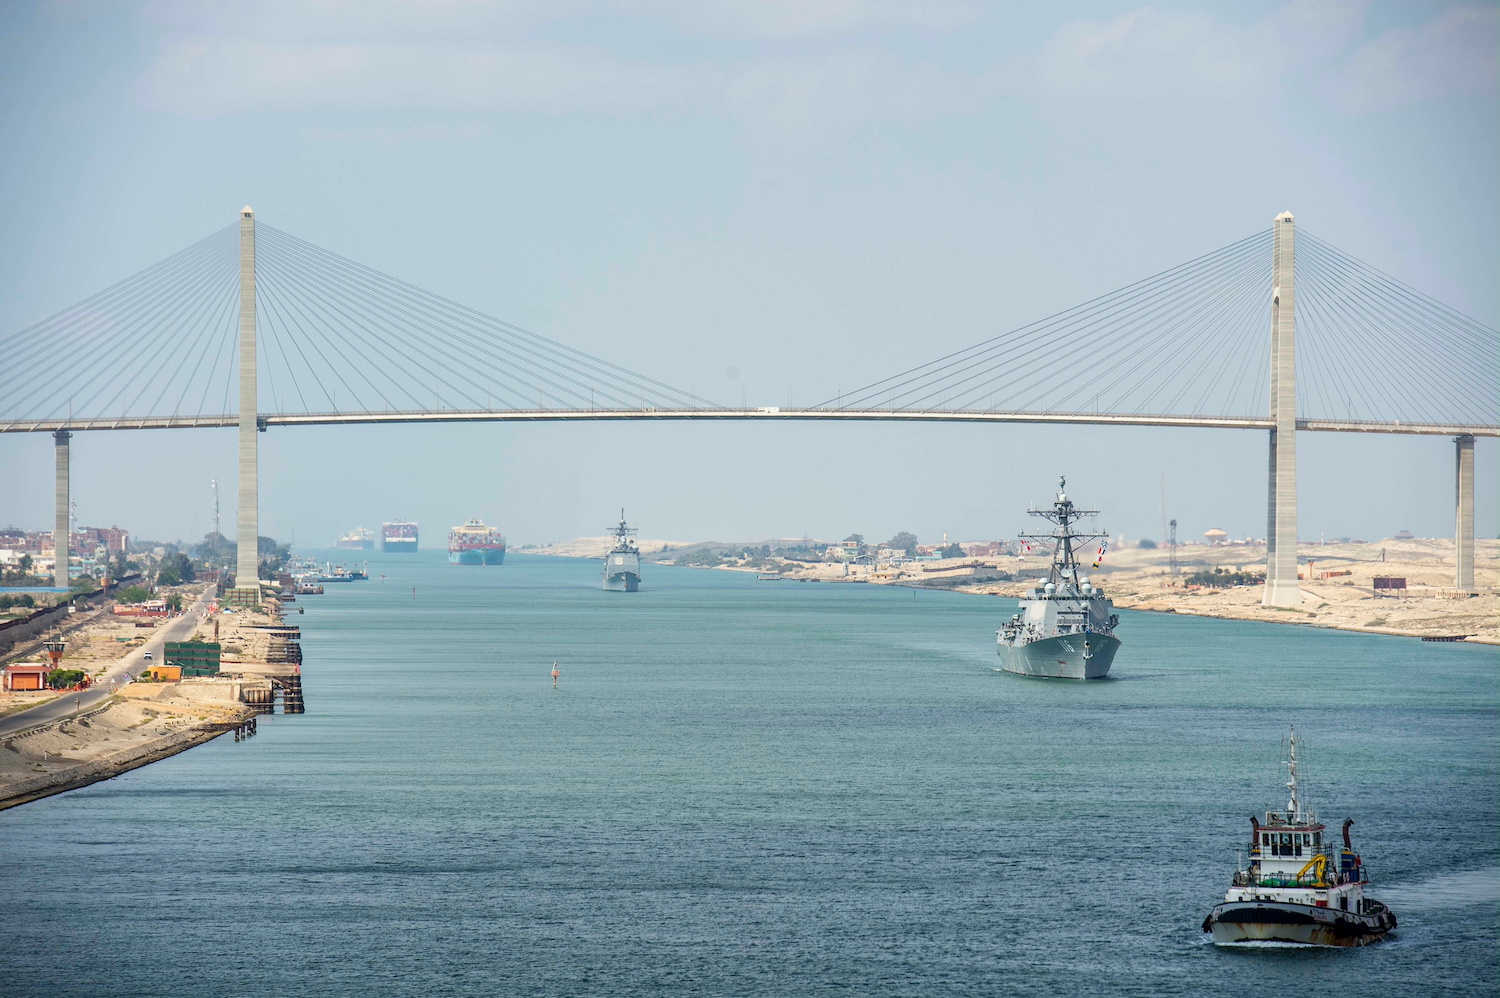 The guided-missile cruiser USS Monterey and the guided-missile destroyer USS Thomas Hudner are seen behind a tug following the aircraft carrier USS Dwight D Eisenhower during a transit of the Suez Canal on Friday. (US Navy Han